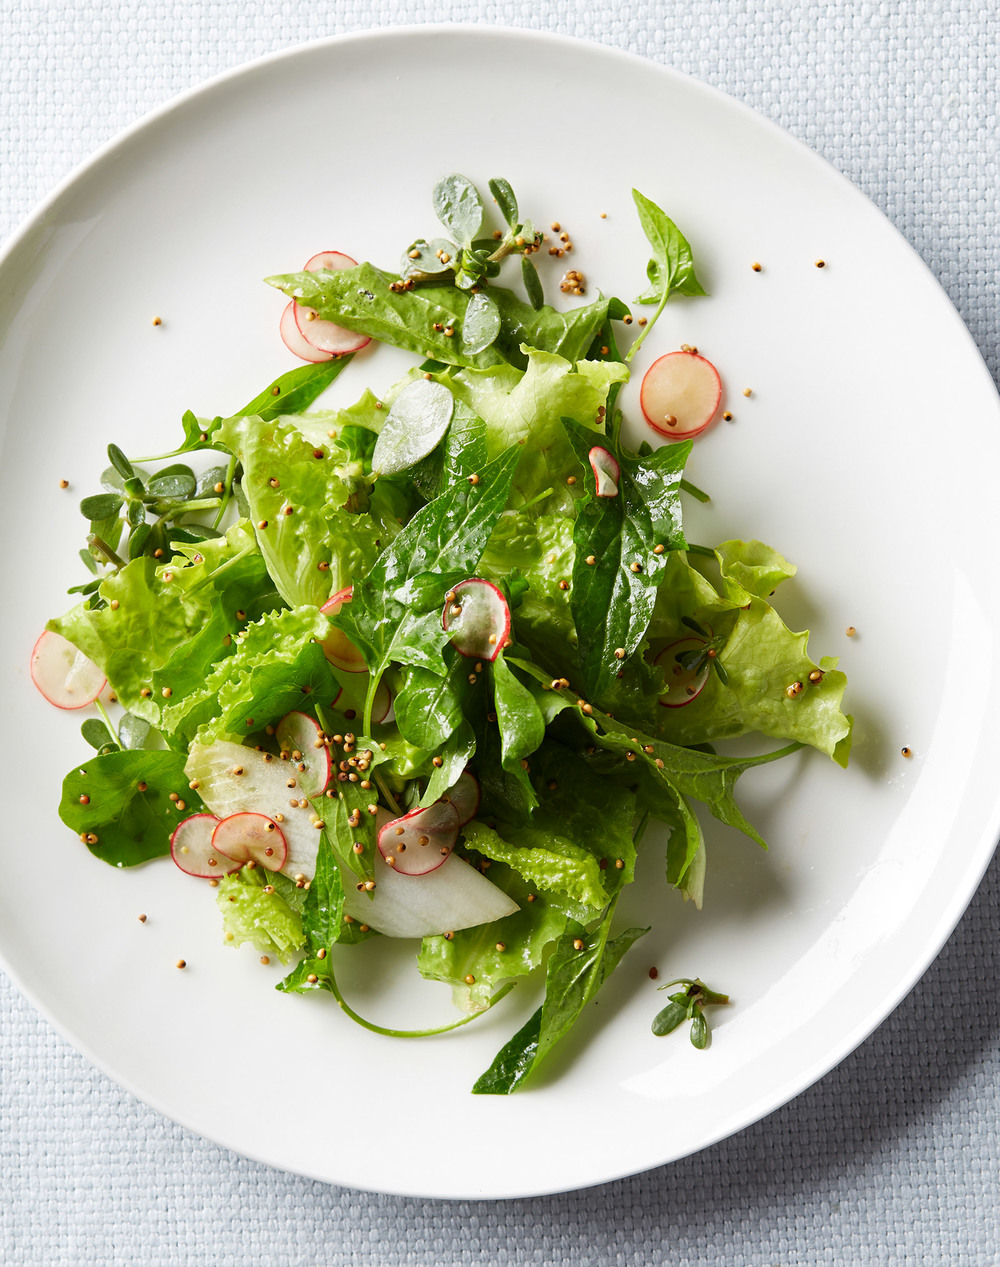 spring greens with radish and toasted millet